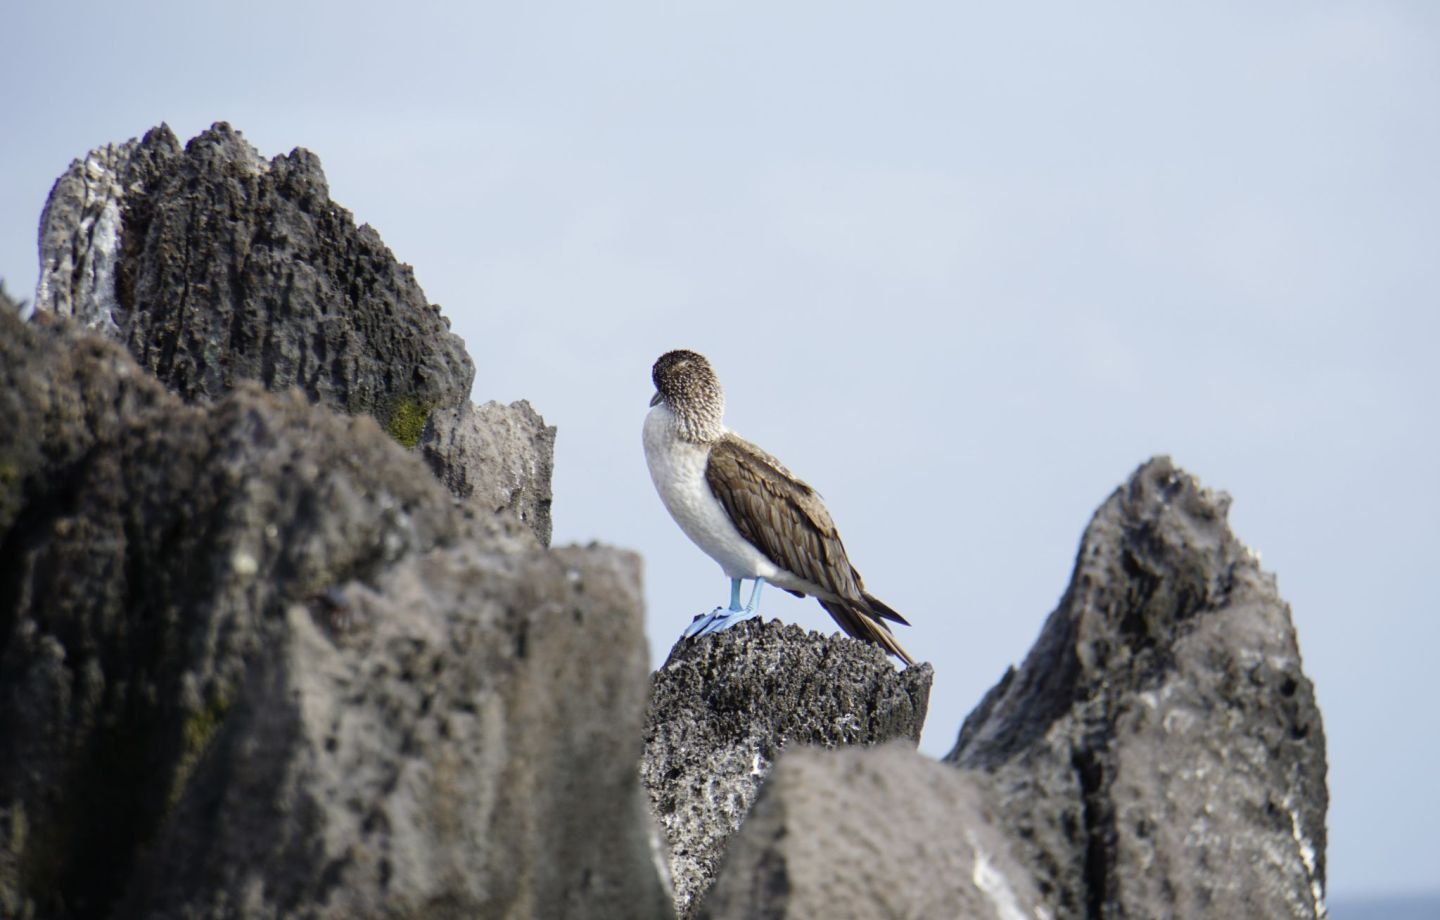 Where to see the Blue-footed booby on the Galápagos islands